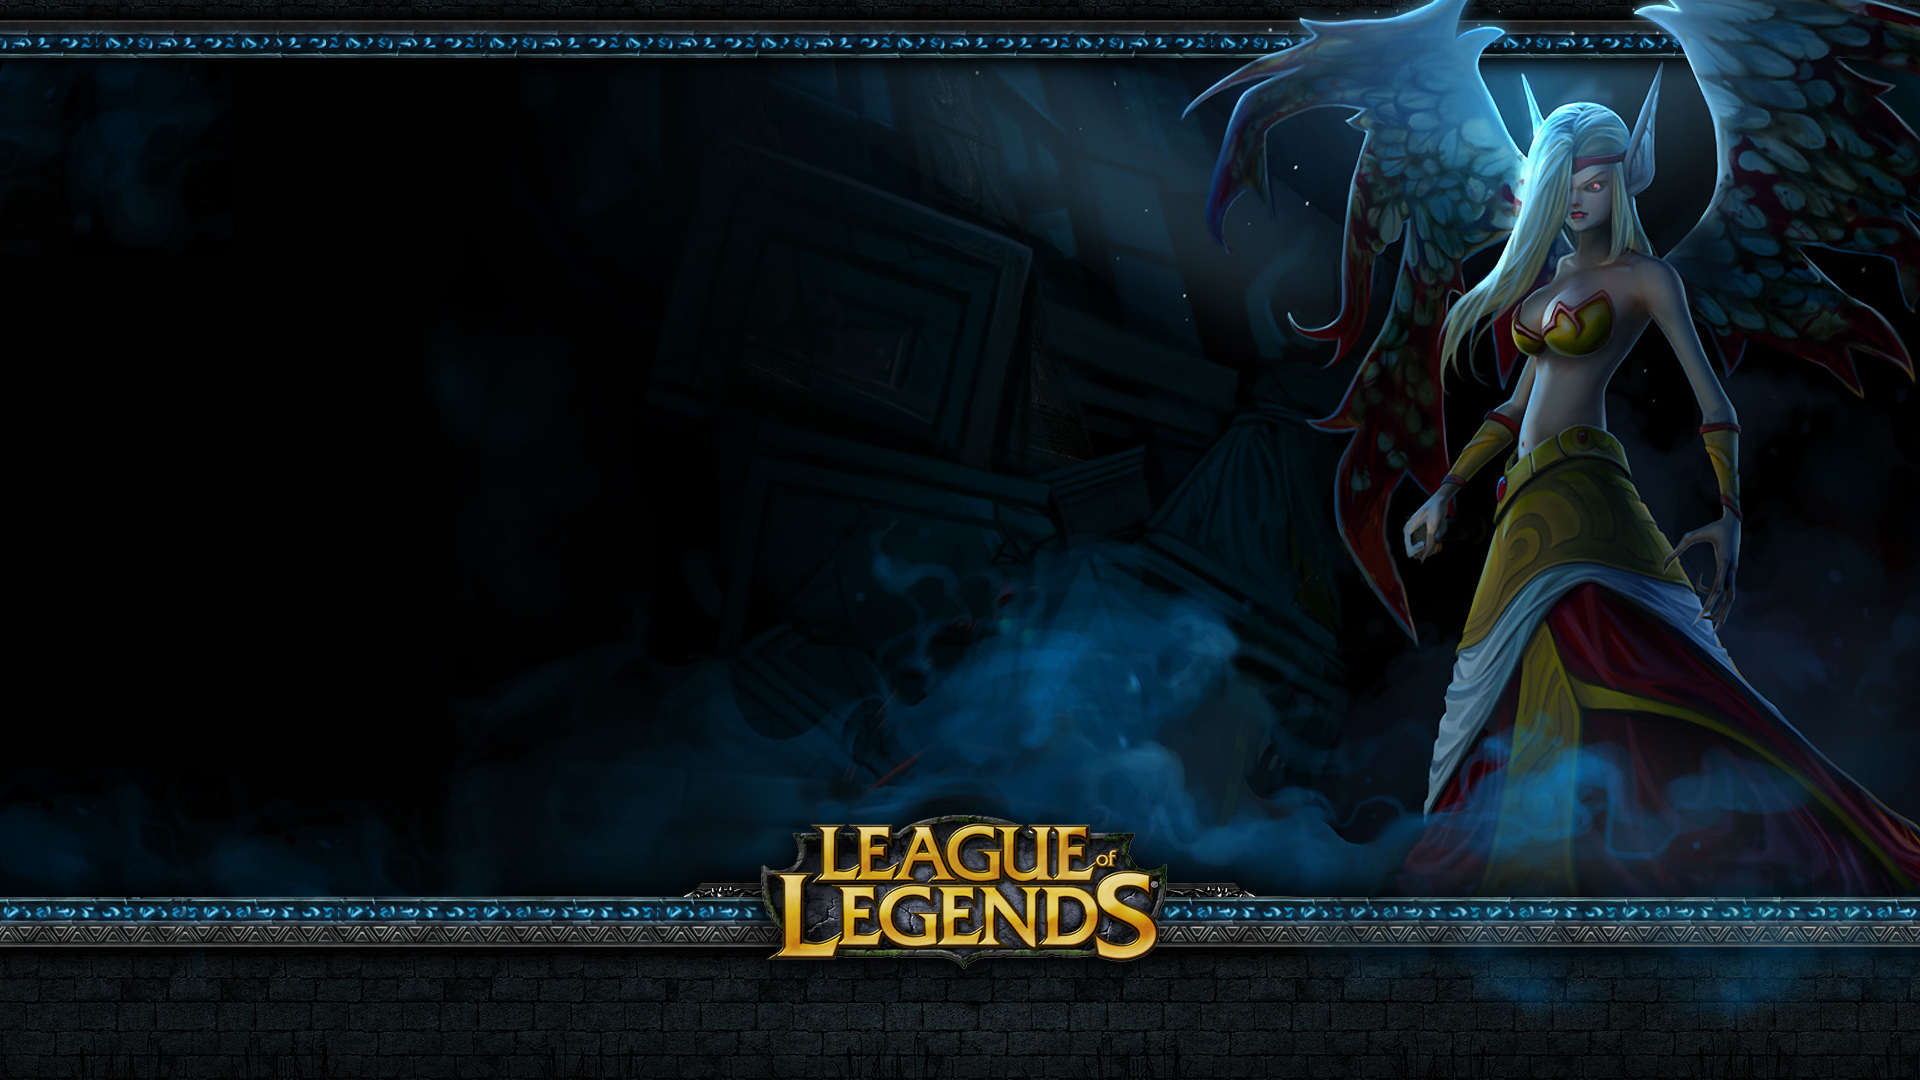 League of Legends wallpaper 36